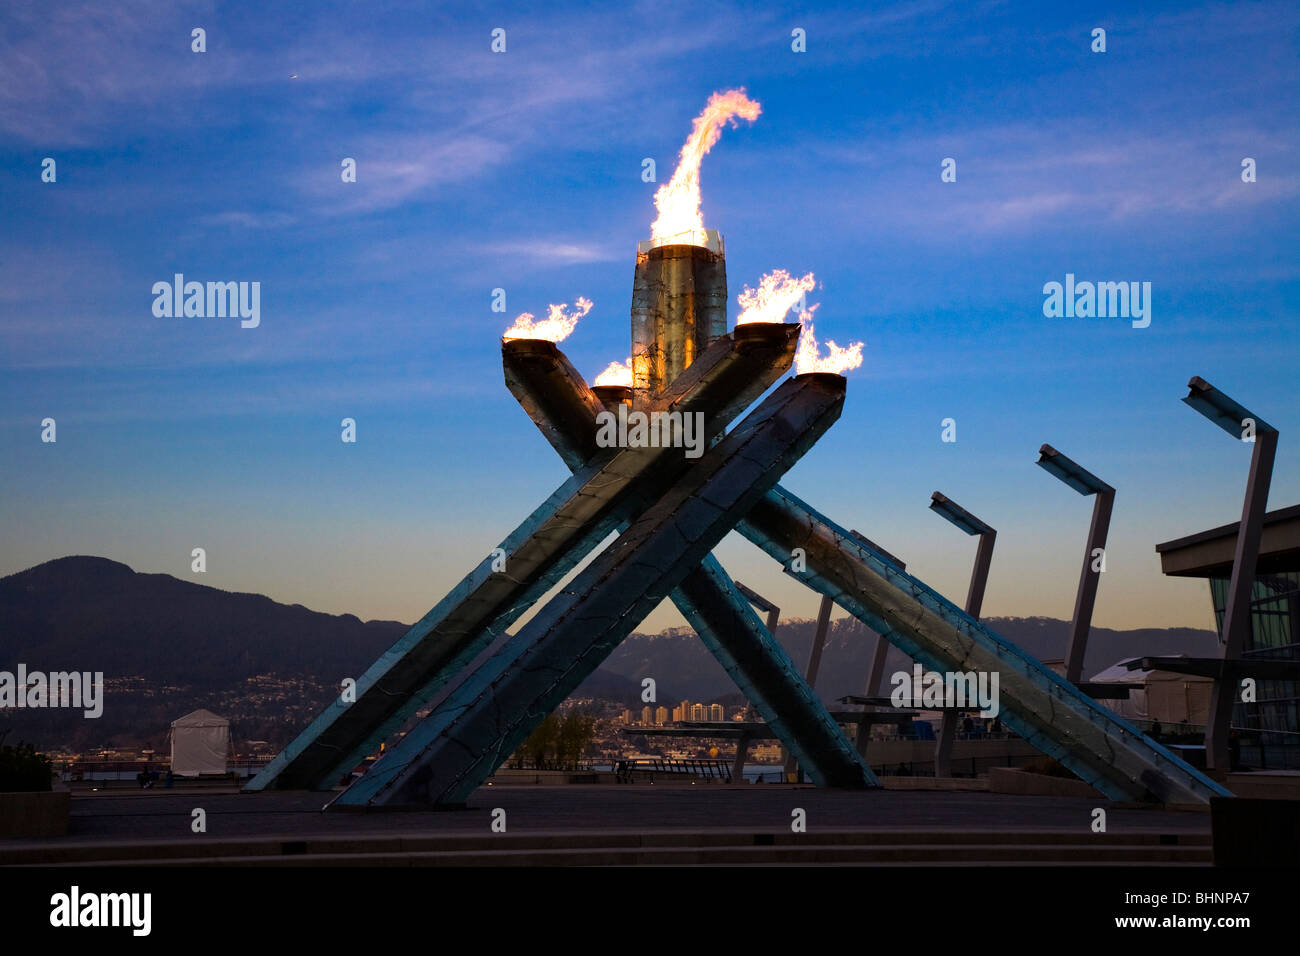 The Olympic Cauldron burns against a darkening sky at the Vancouver 2010 Winter Olympics - Stock Image